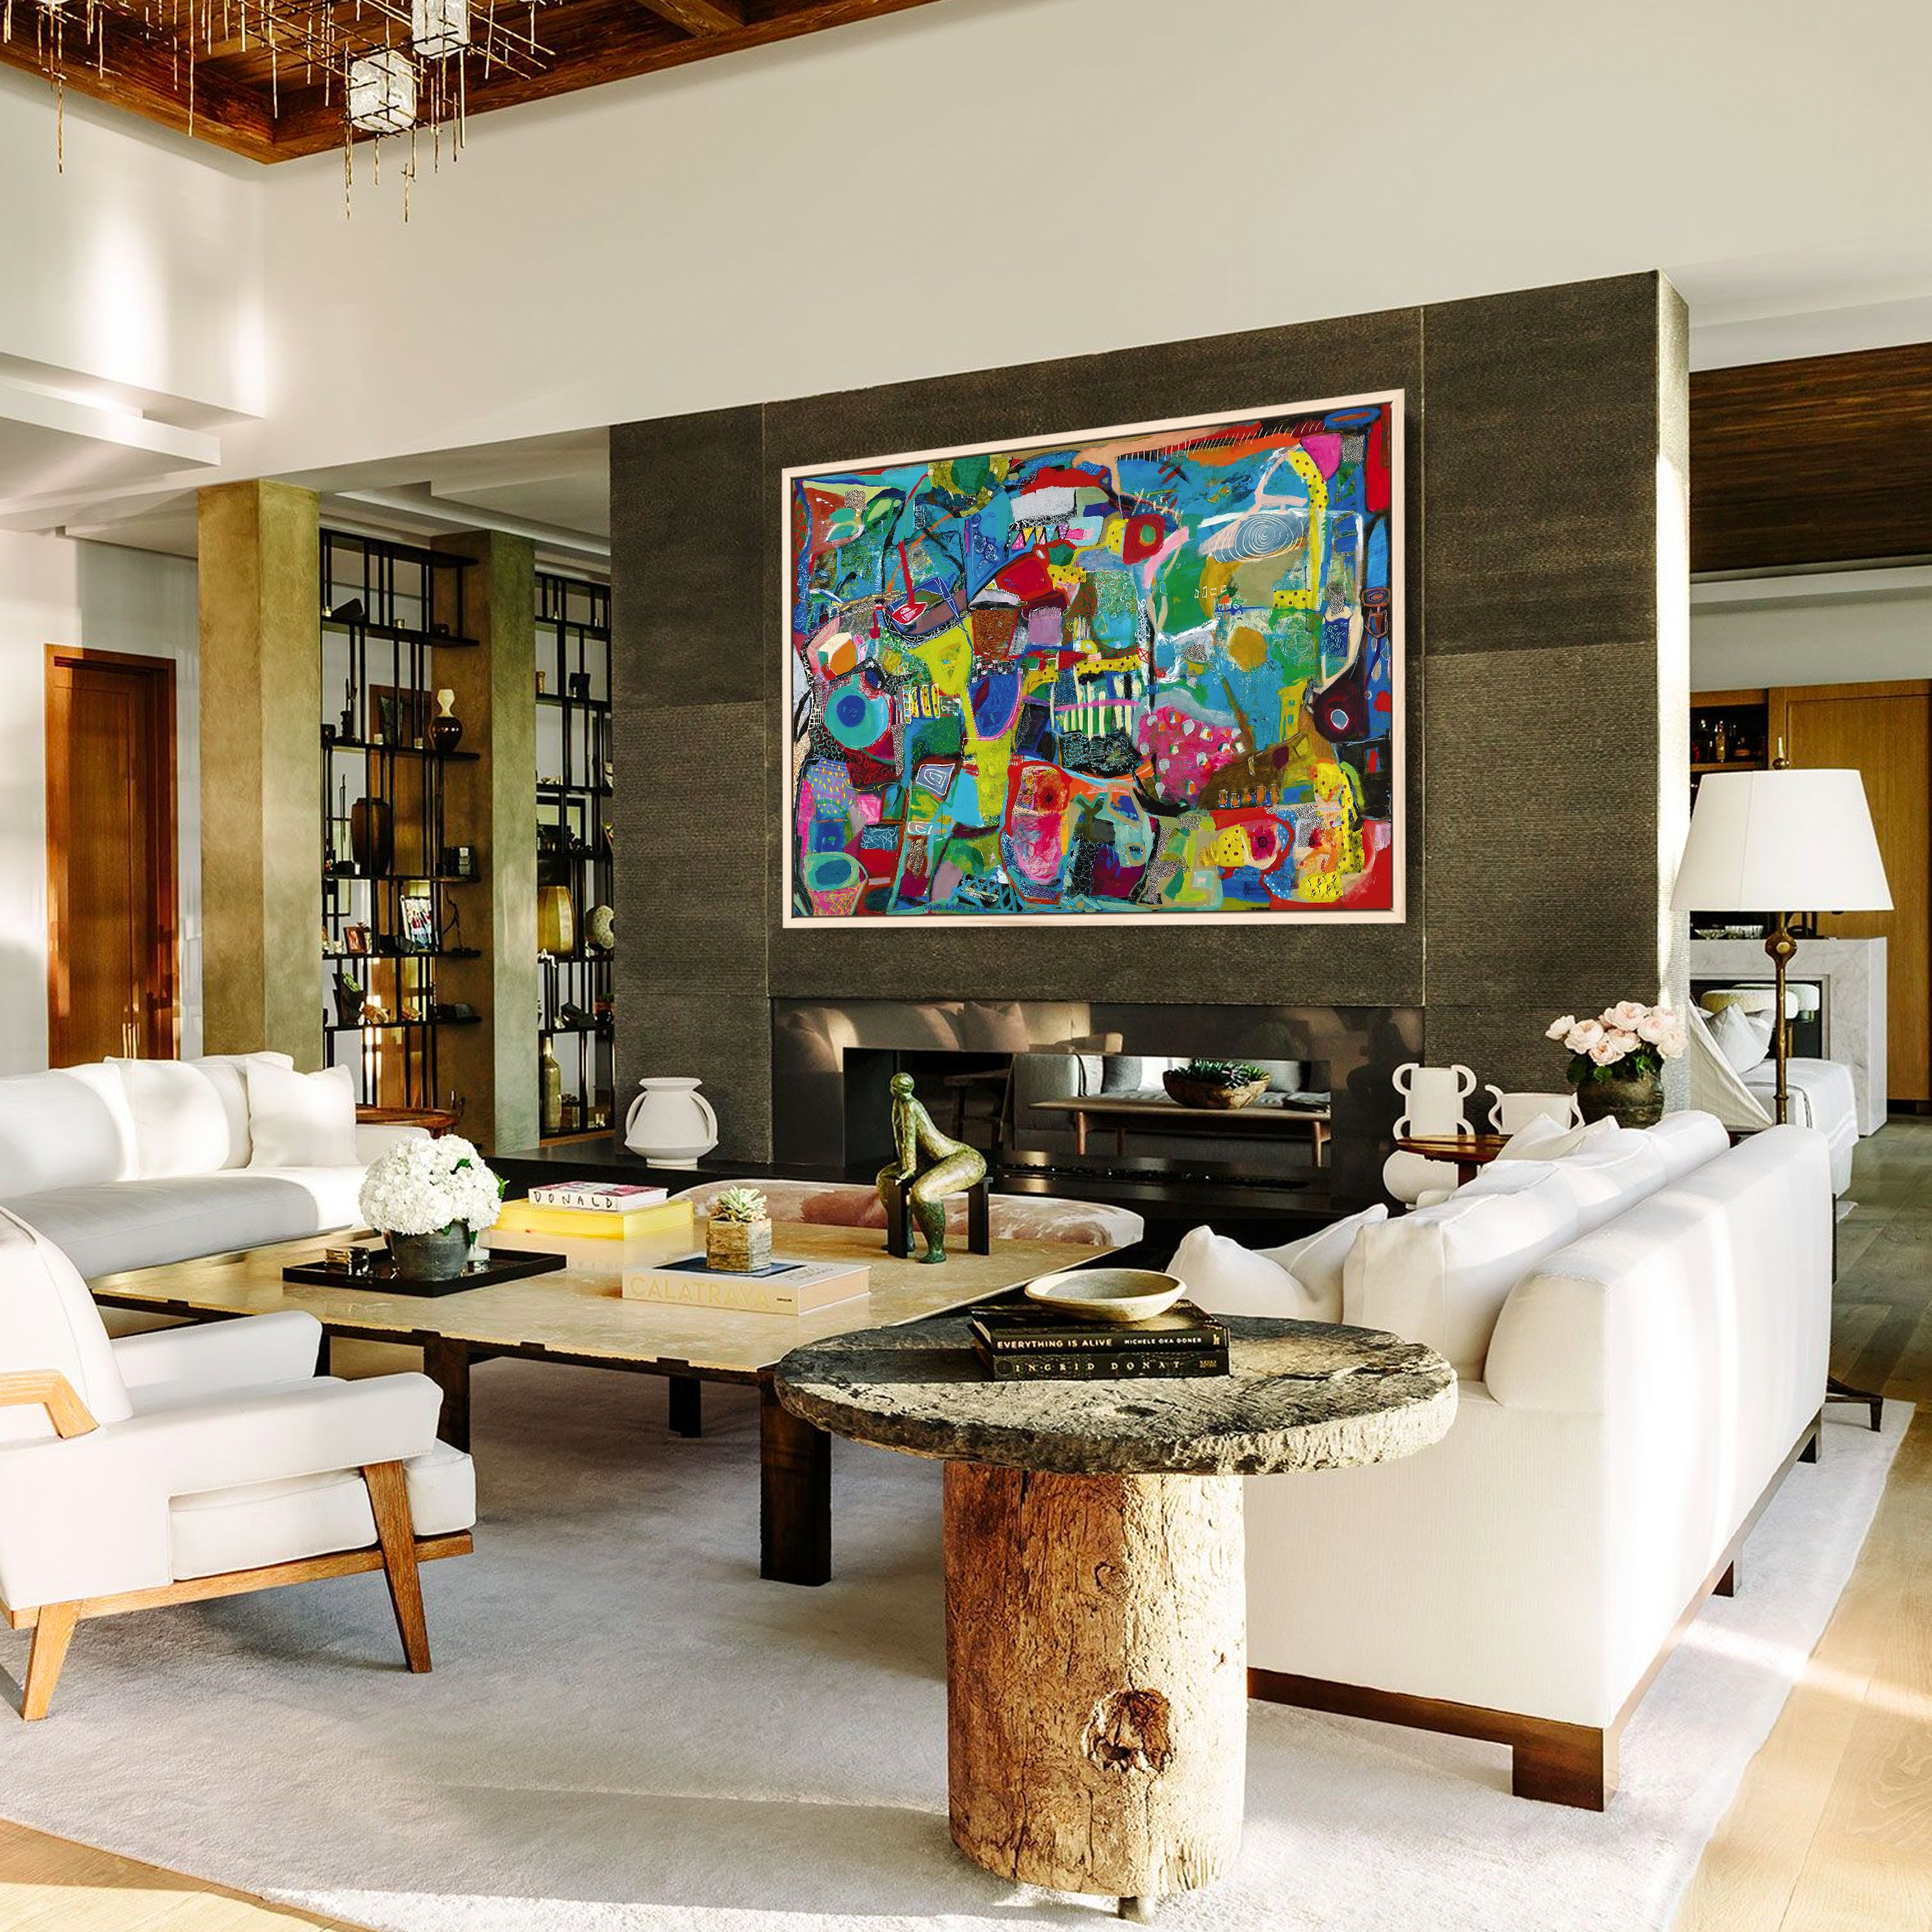 Home decor inspiration - abstract art in living room interior design